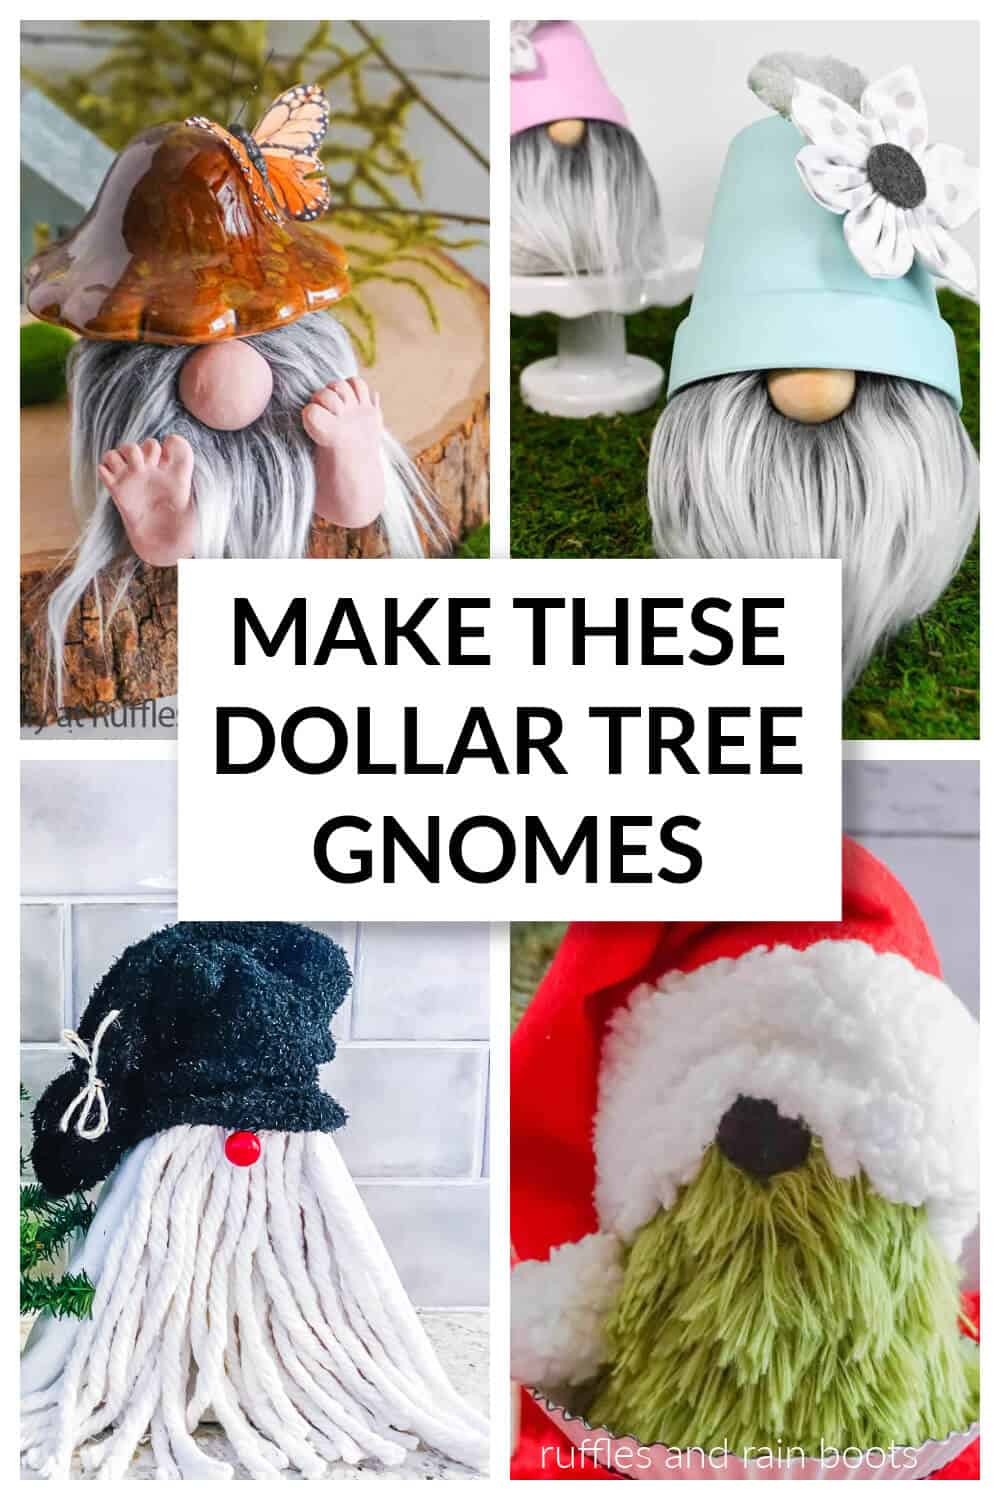 collage of dollar tree gnomes for Christmas spring and all seasons